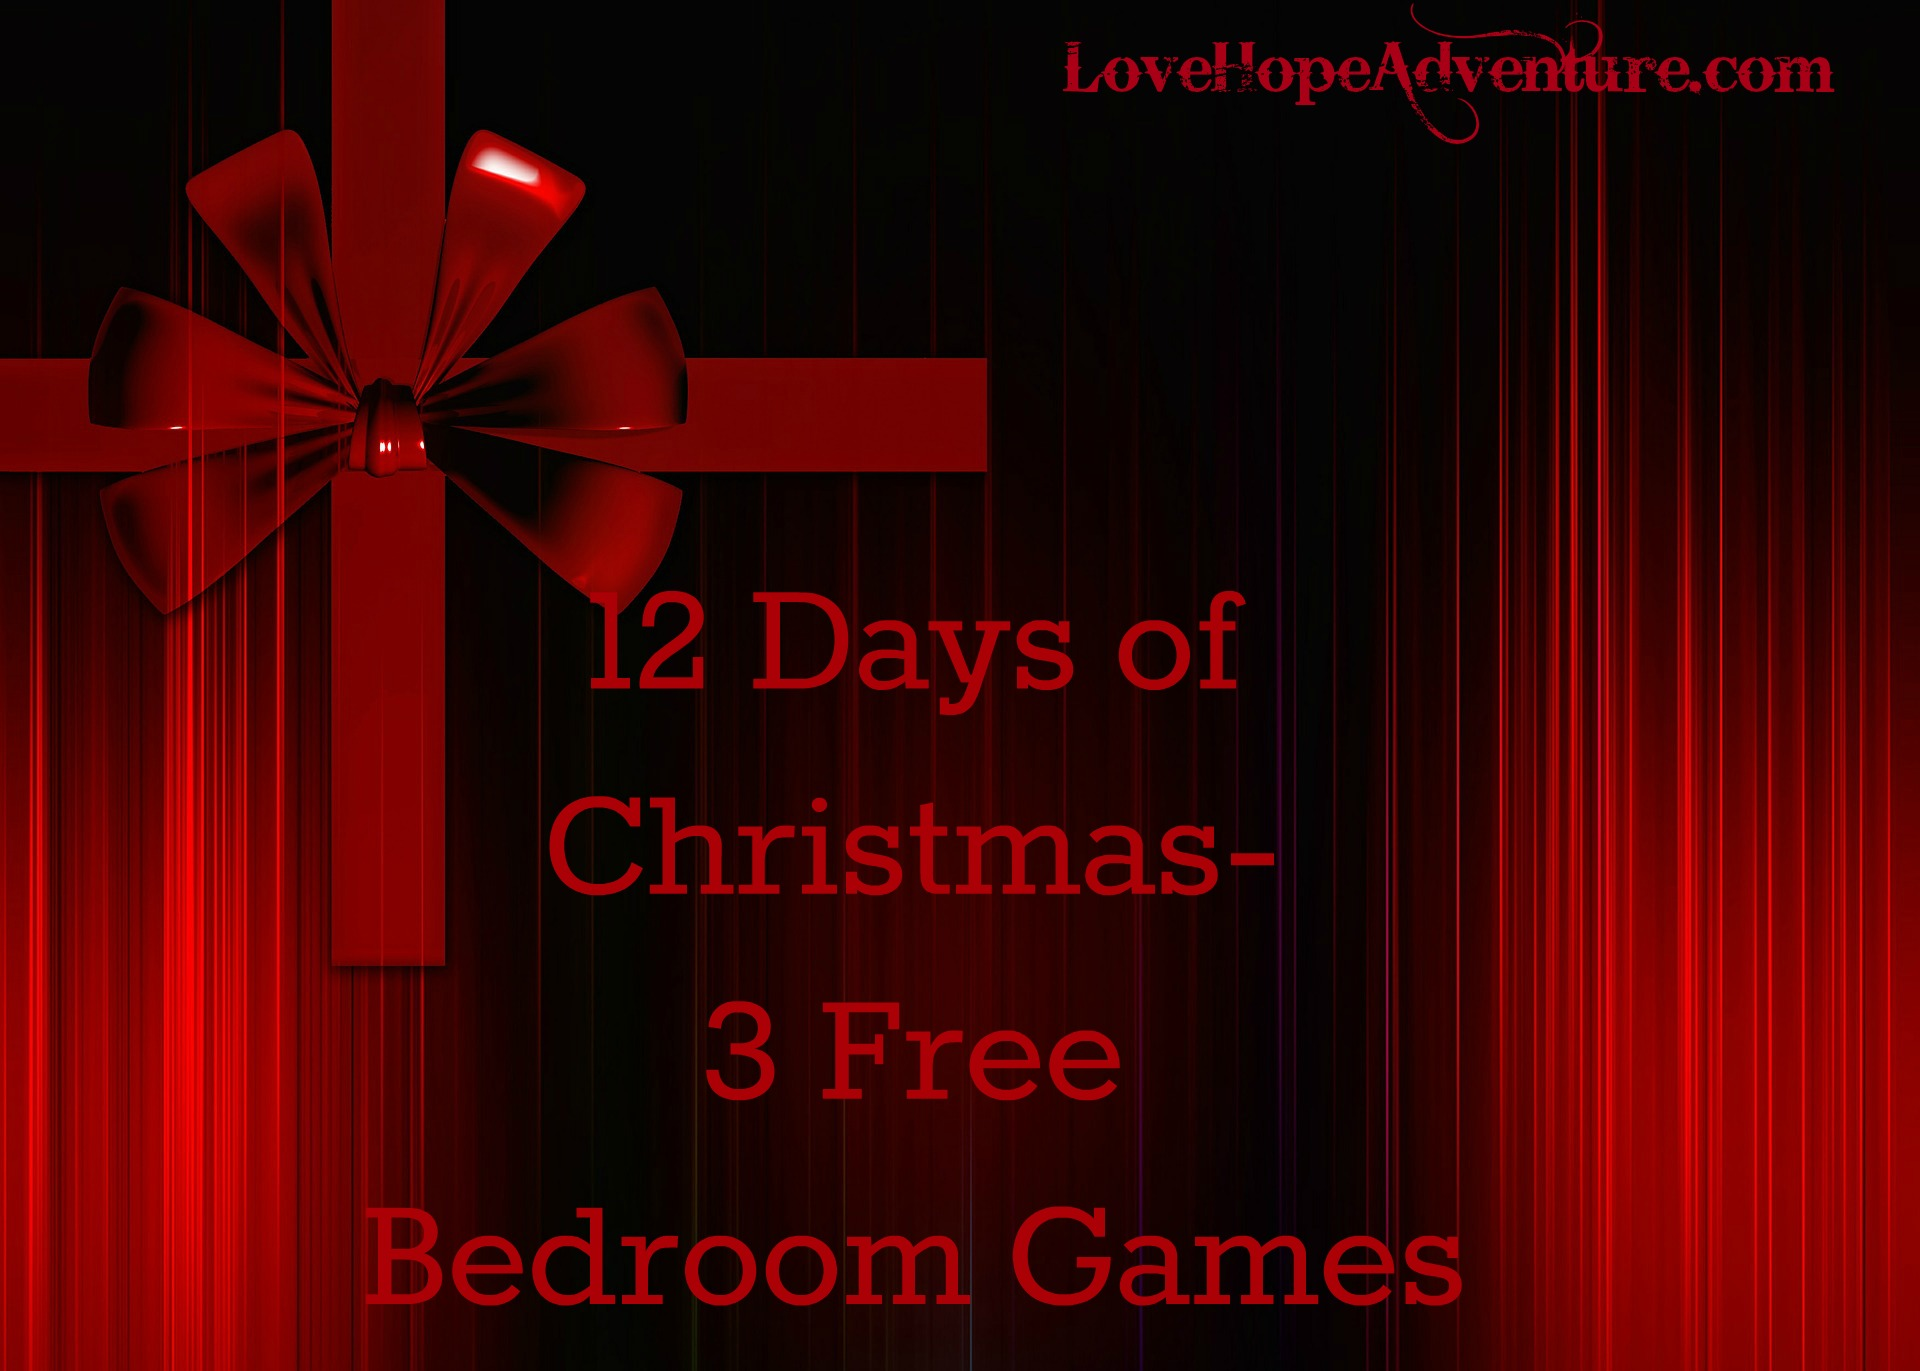 12 Days of Christmas 3 Bedroom Games